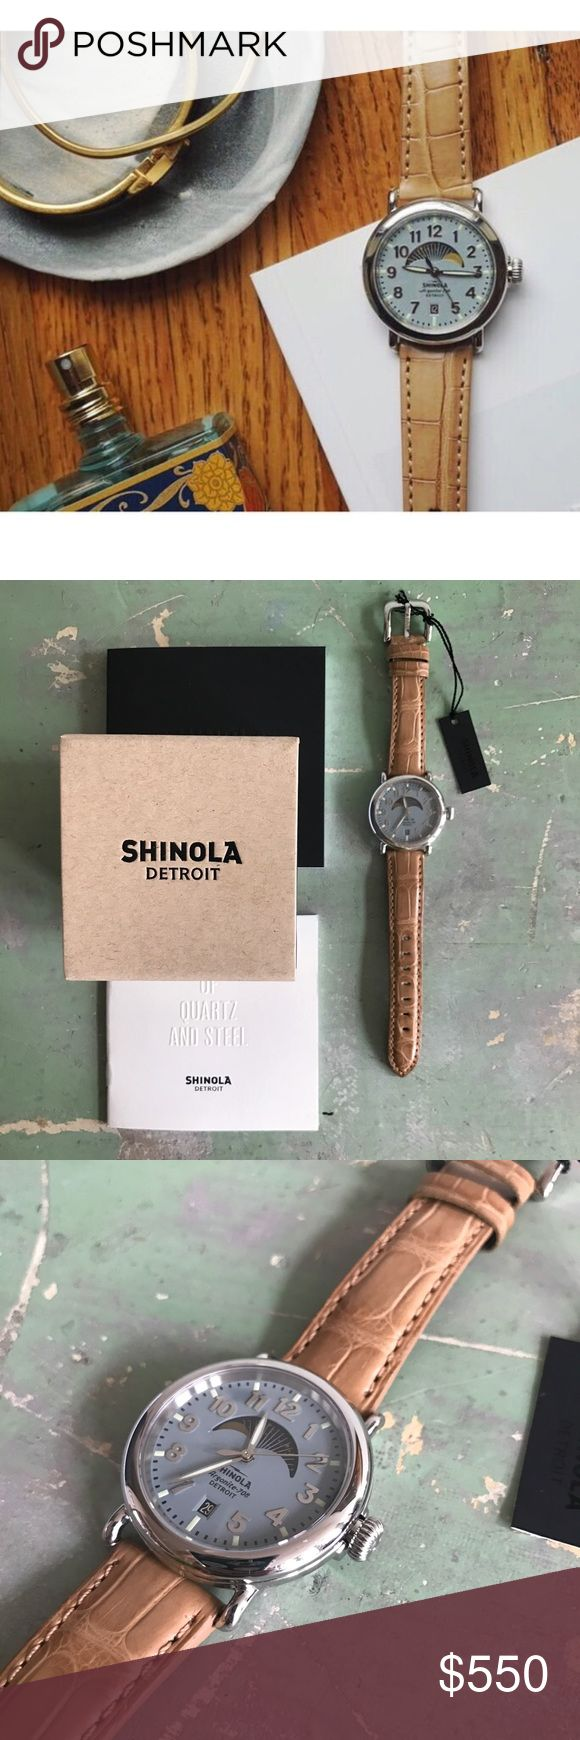 Shinola Runwell Watch Built in Detroit. Shinola 36mm Runwell Moon Phase watch. Features slate blue dial and 100% genuine American alligator tan strap. Argonite-708 movement includes a sweeping second hand, date, and moon phase tracker. The screw down crown assists in water resistance up to 5 ATM. Package includes a small paper box, user manual, and booklet about manufacturing in Detroit. Watch has been worn a handful of times. Very minimal scuffing on the edge of the stainless steel case…